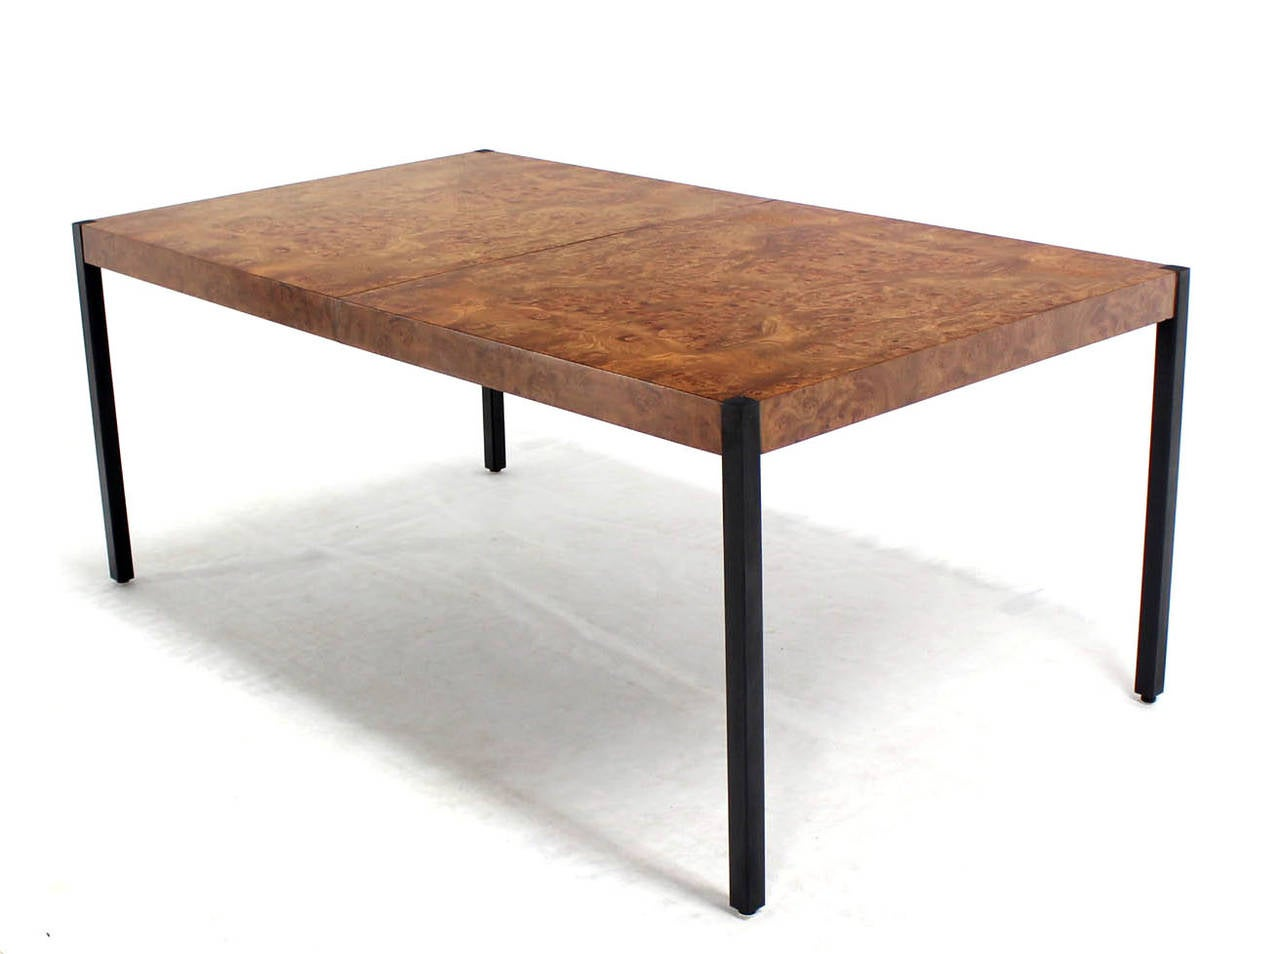 Burl Wood Dining Table With Two Extension Boards By Baughman At 1stdibs